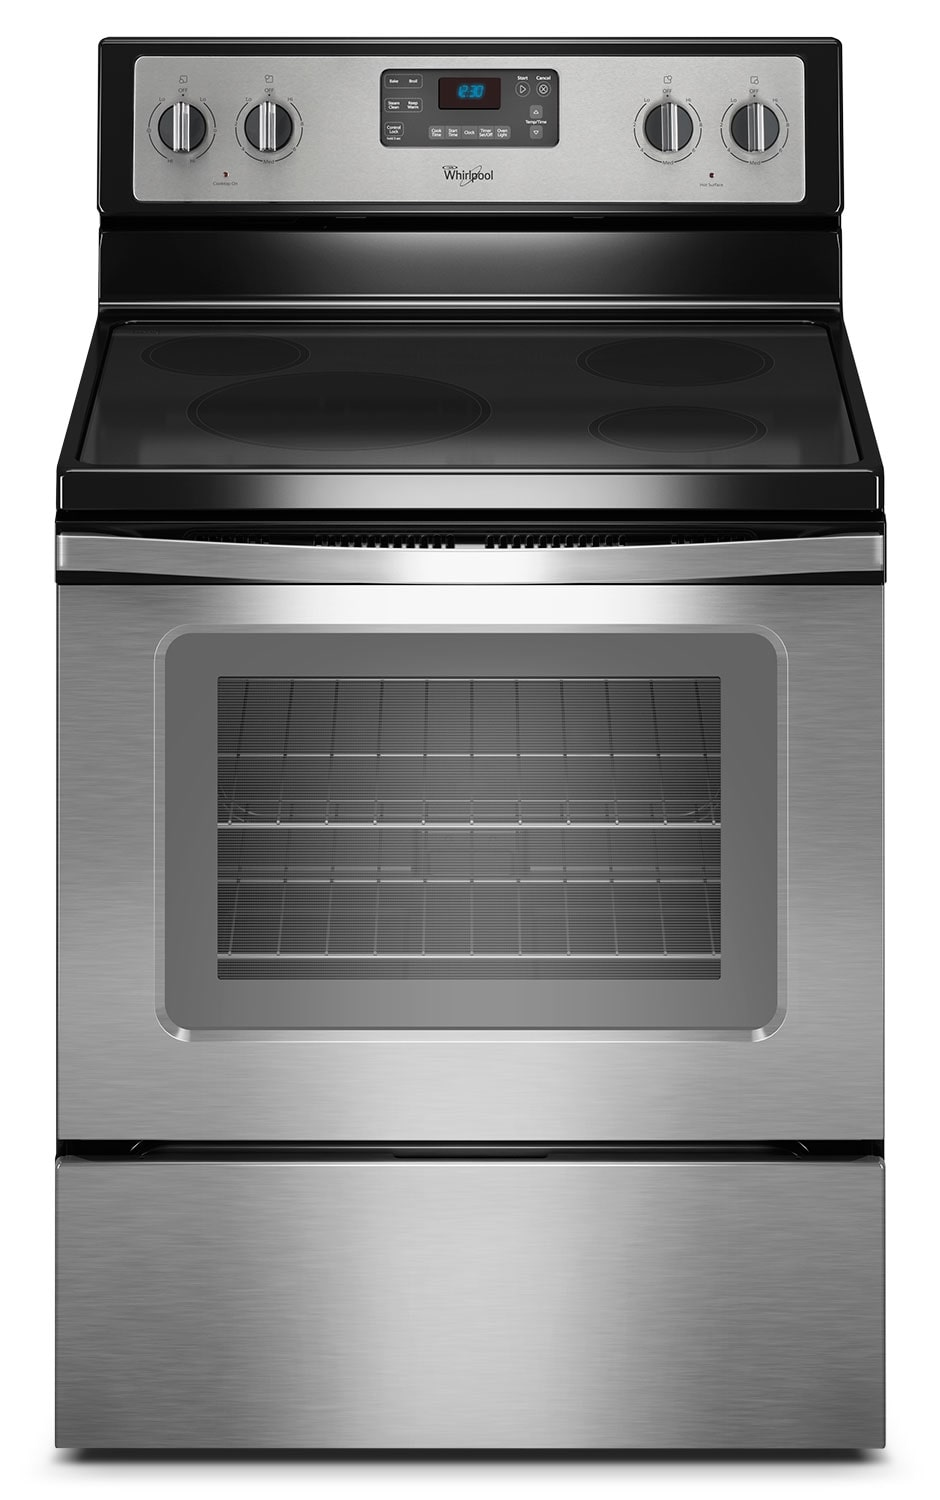 Whirlpool ® 4.8 Cu. Ft. Capacity Freestanding Electric Range - Stainless Steel